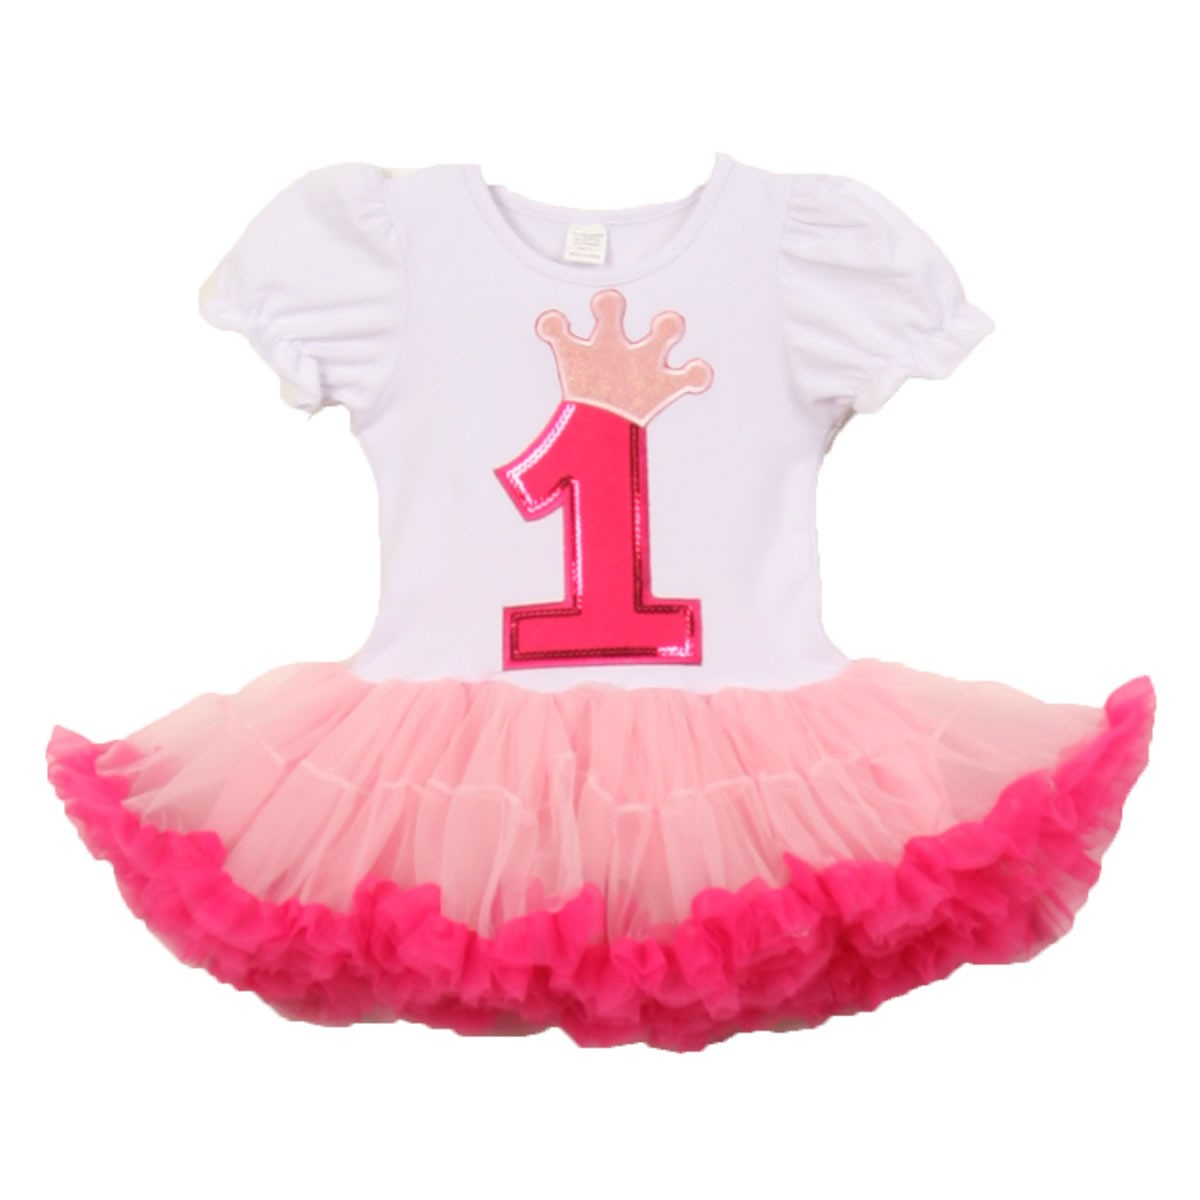 Baby Girls White Pink Number Crown Applique Birthday Tutu Dress 1 2 Years